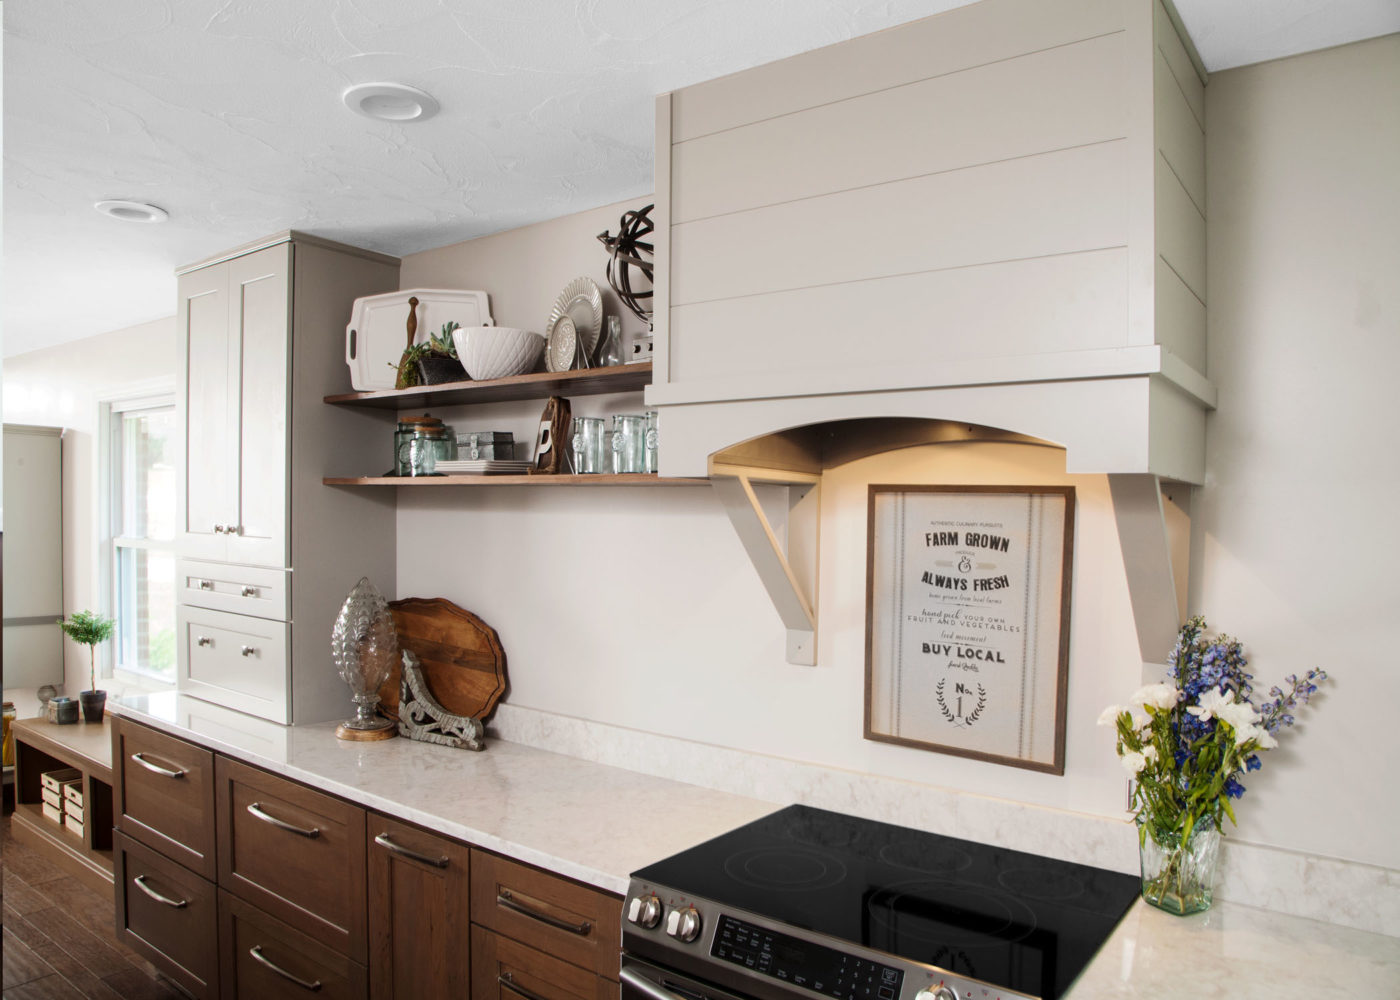 Floating Shelves are a must-have kitchen feature.